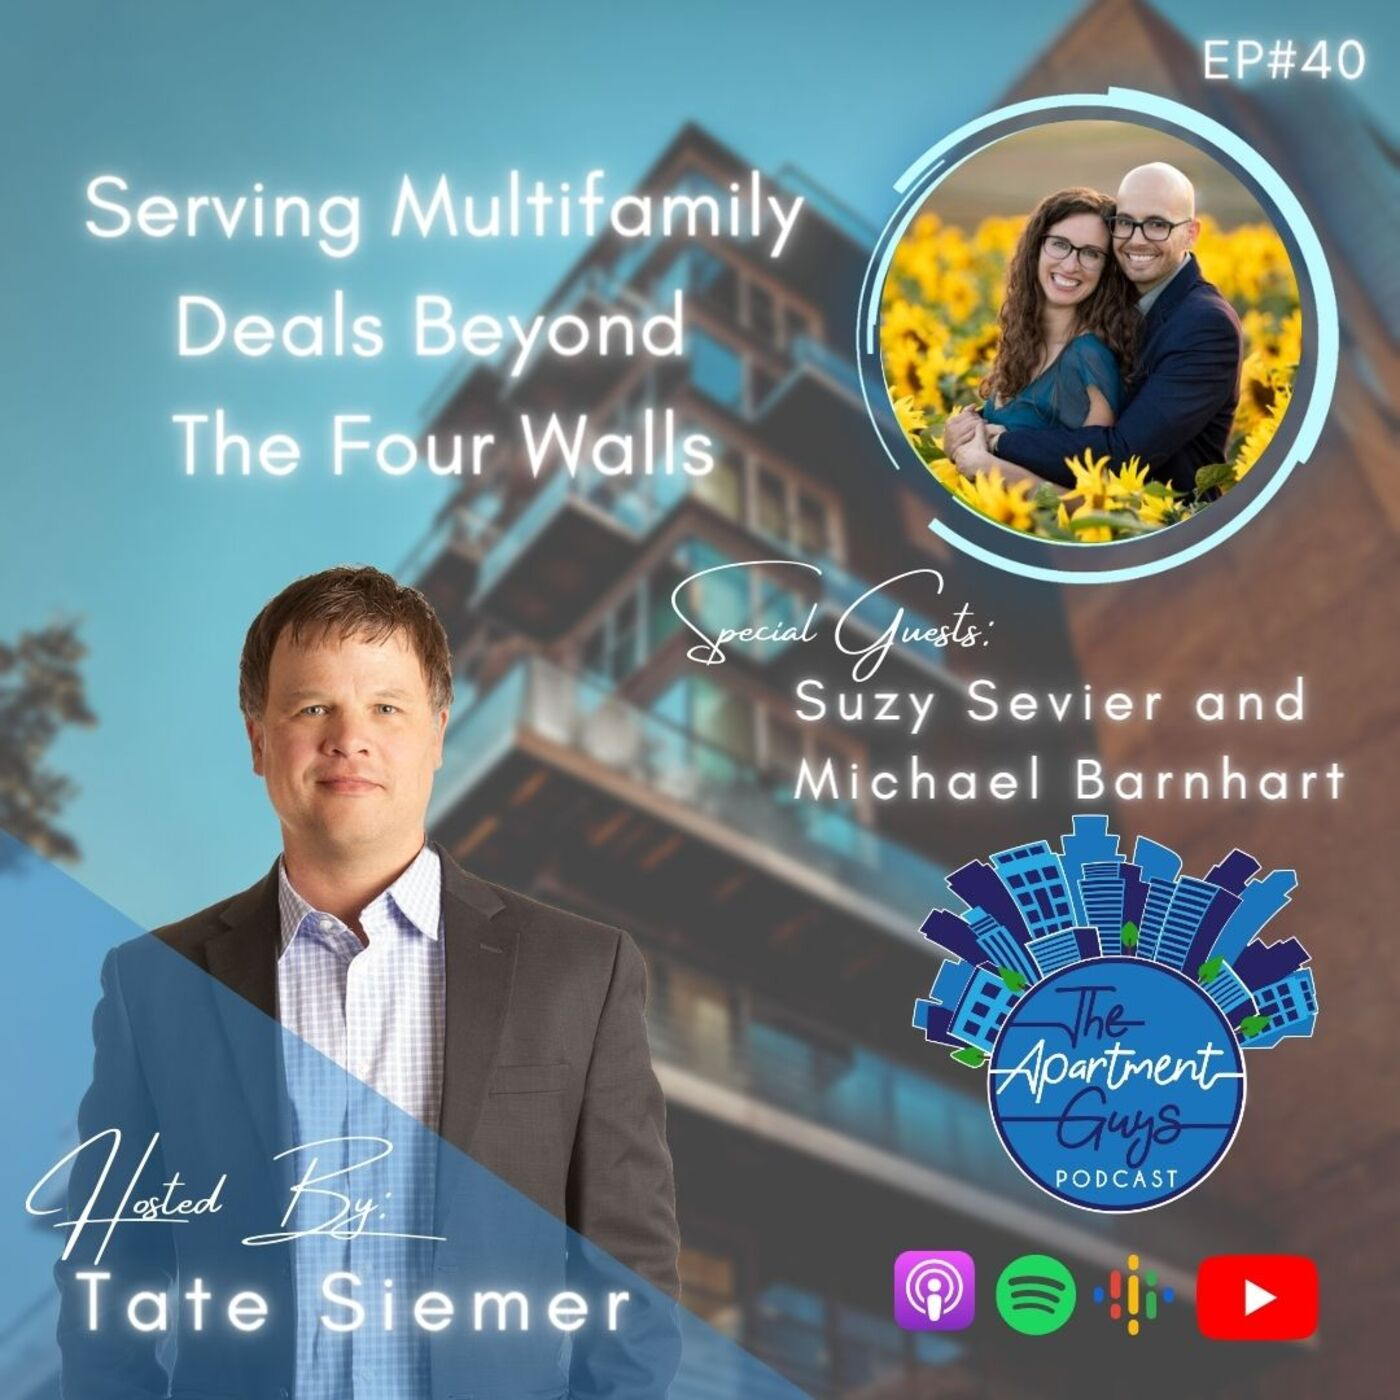 Episode 040: Suzy Sevier and Michael Barnhart -  Serving Multifamily Deals Beyond The Four Walls